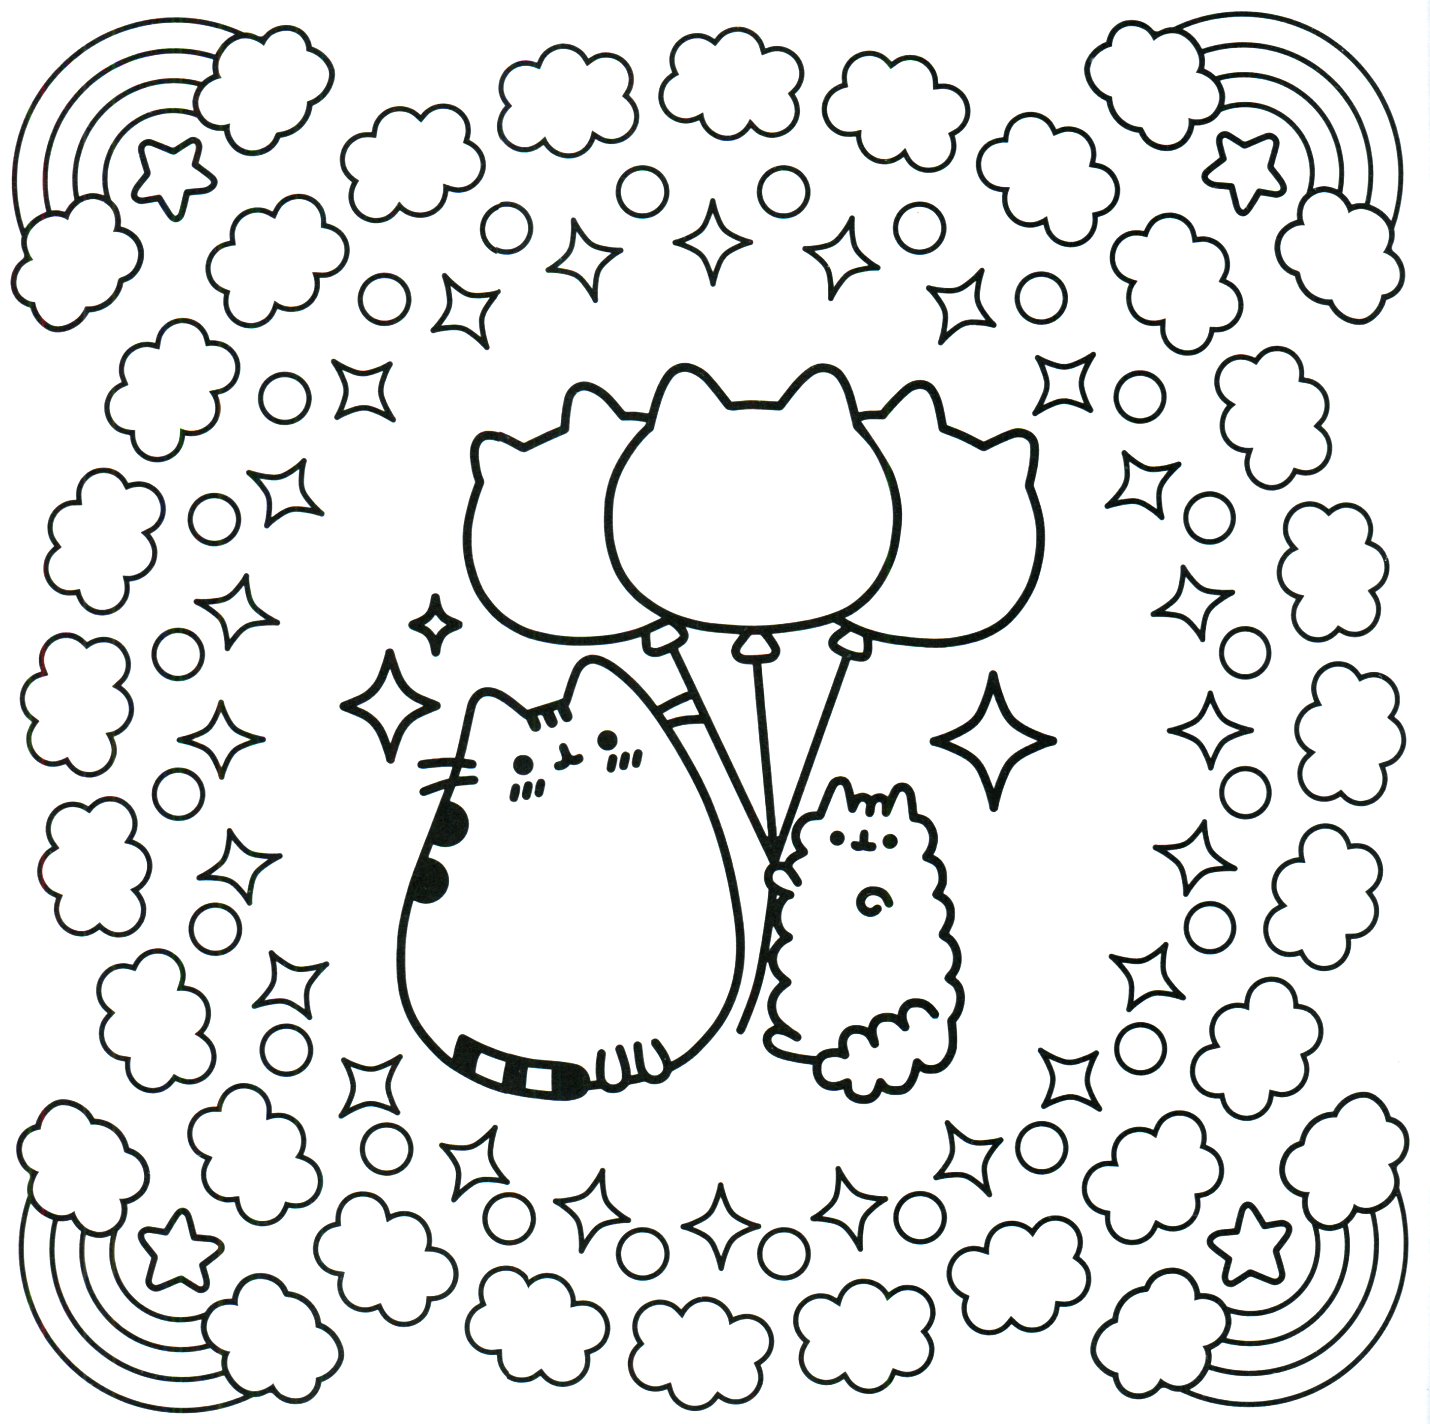 p coloring pages for kids - photo#37